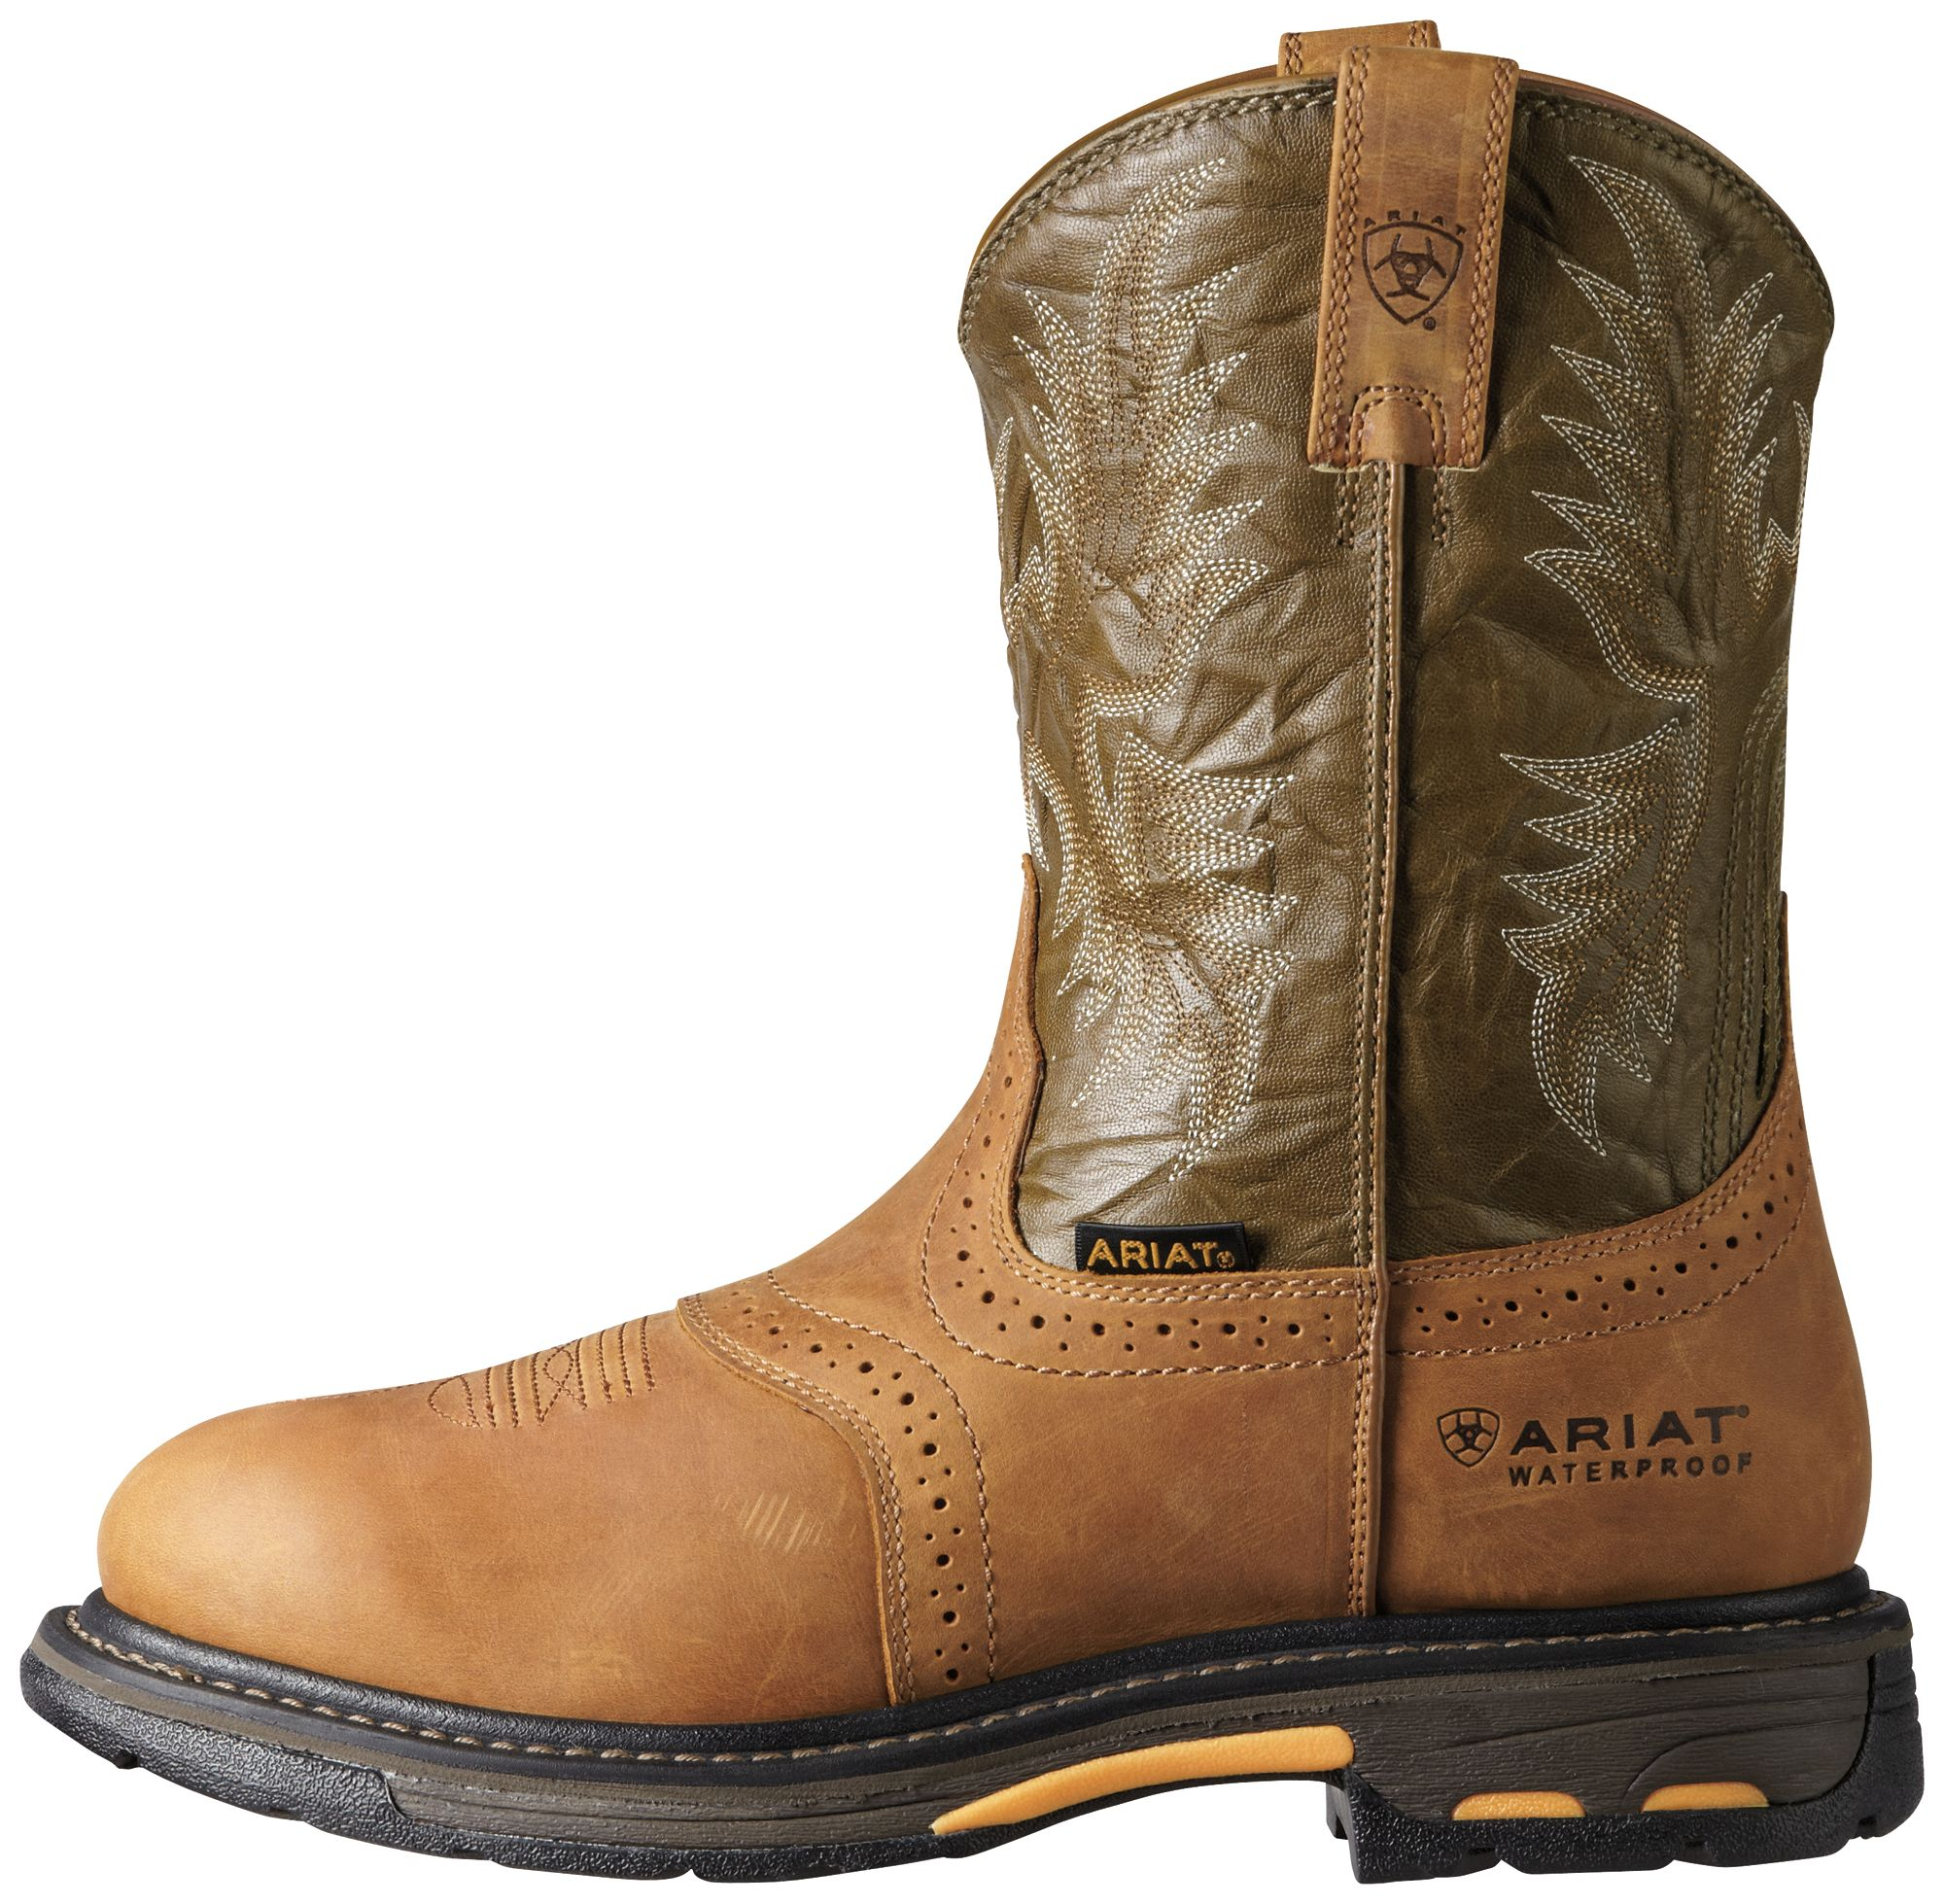 Ariat Work Boots On Sale dXt9zw0b